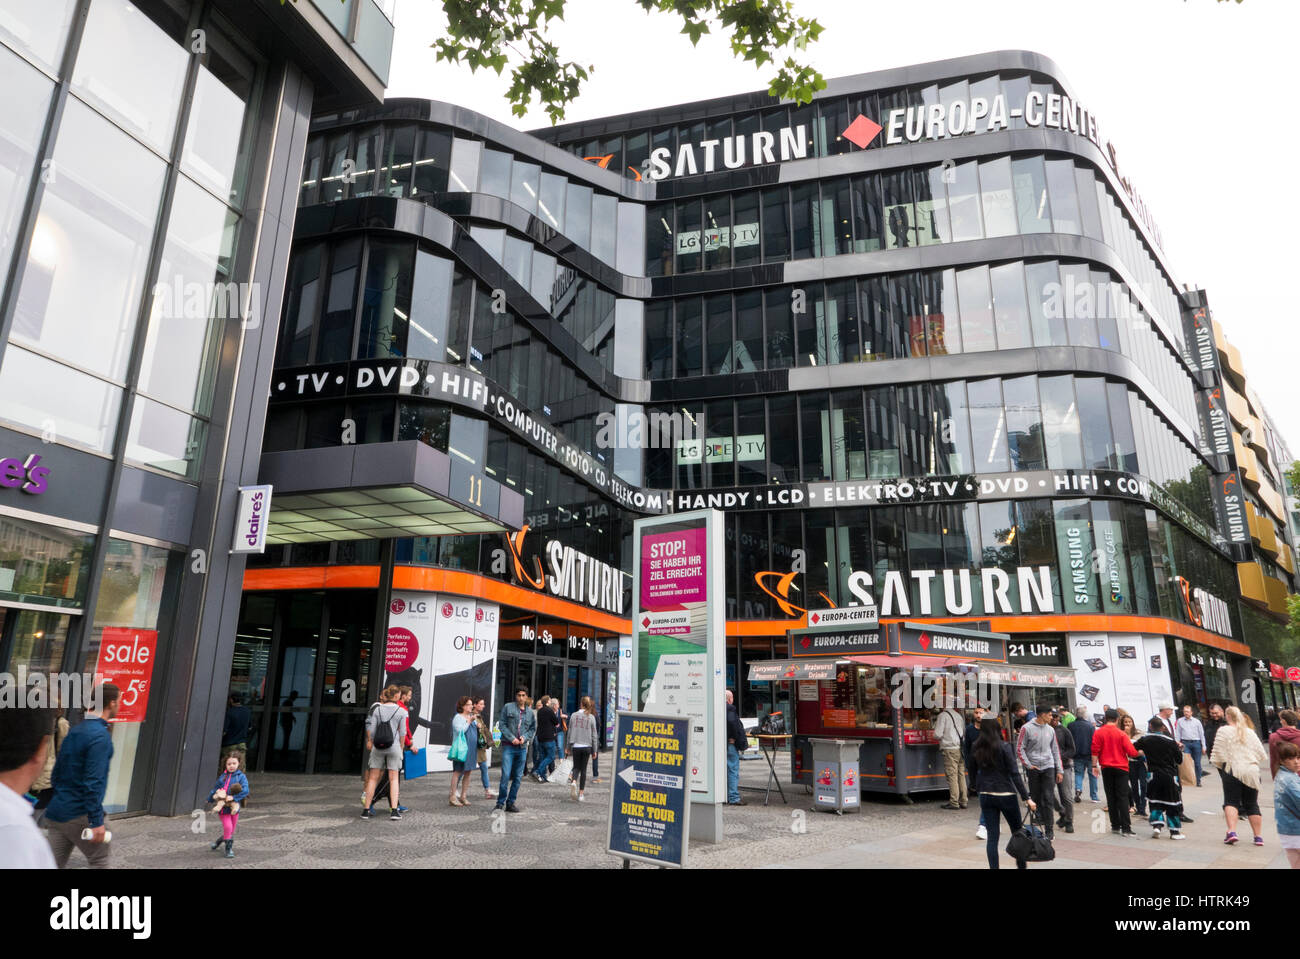 the exterior of the europa center with the saturn logo berlin stock photo royalty free image. Black Bedroom Furniture Sets. Home Design Ideas